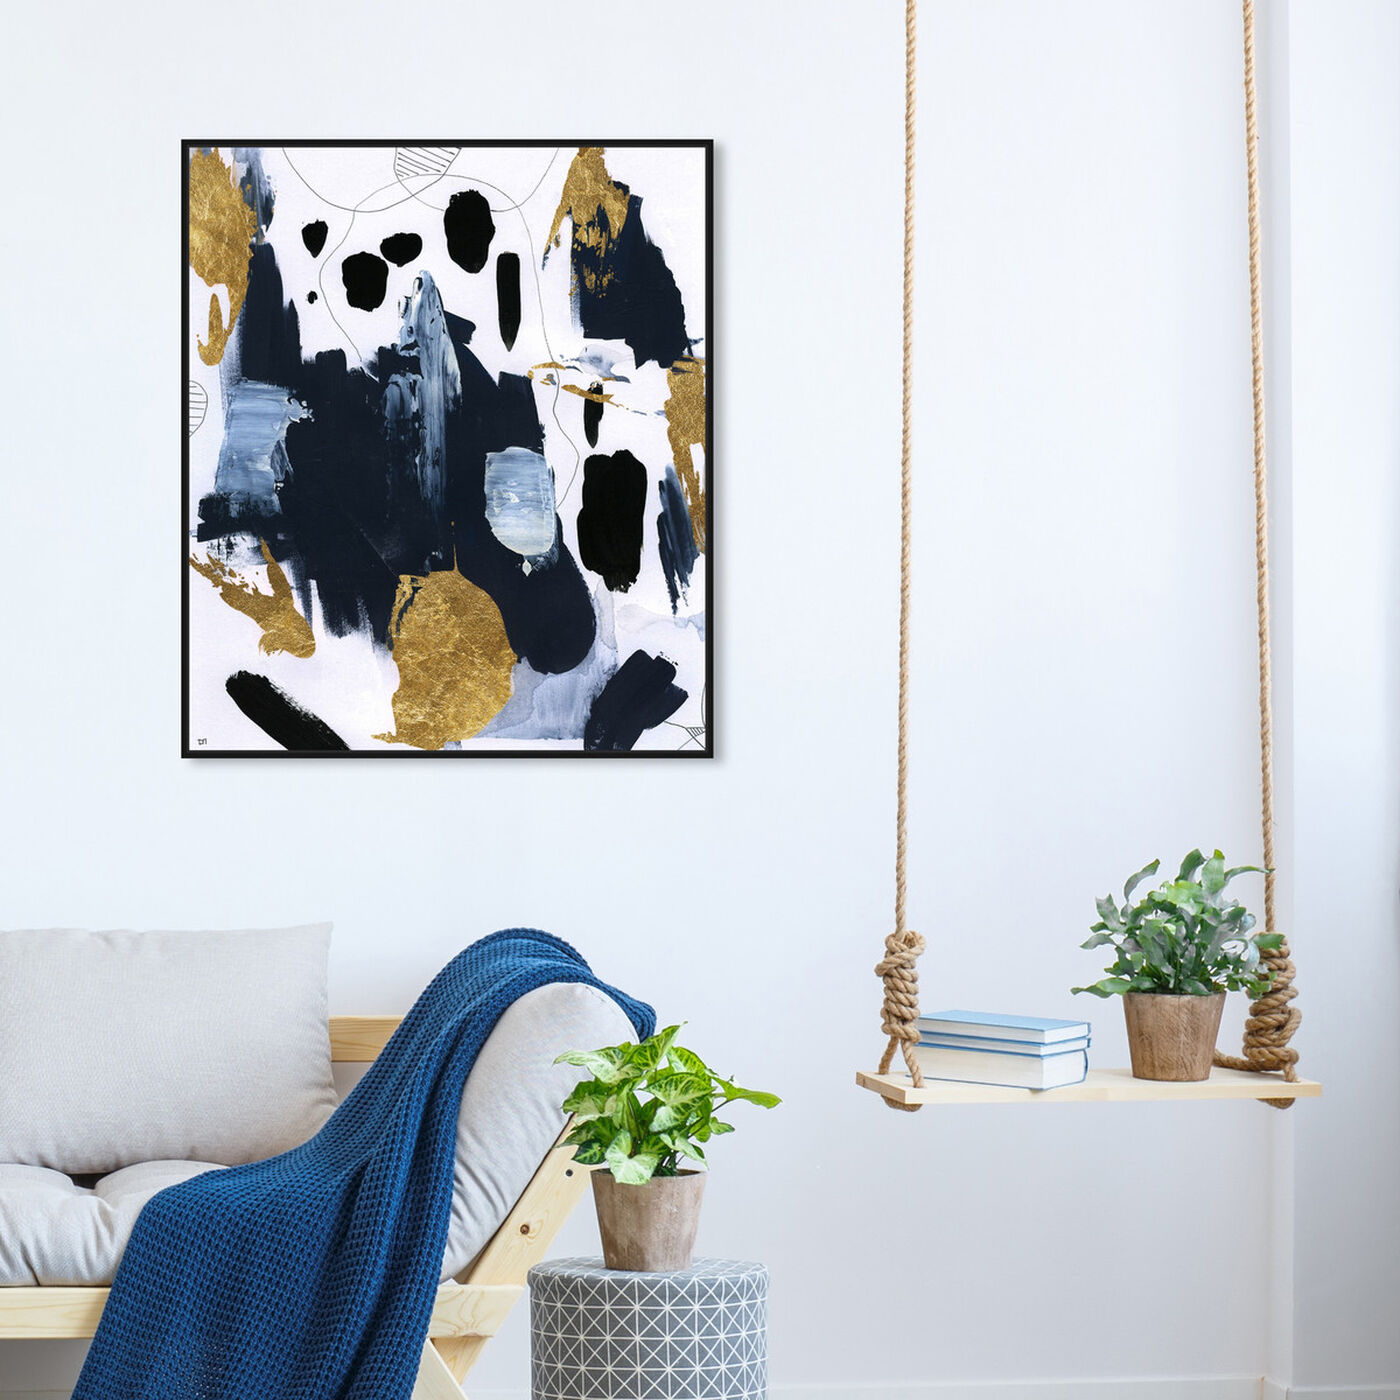 Hanging view of Fugaz featuring abstract and paint art.